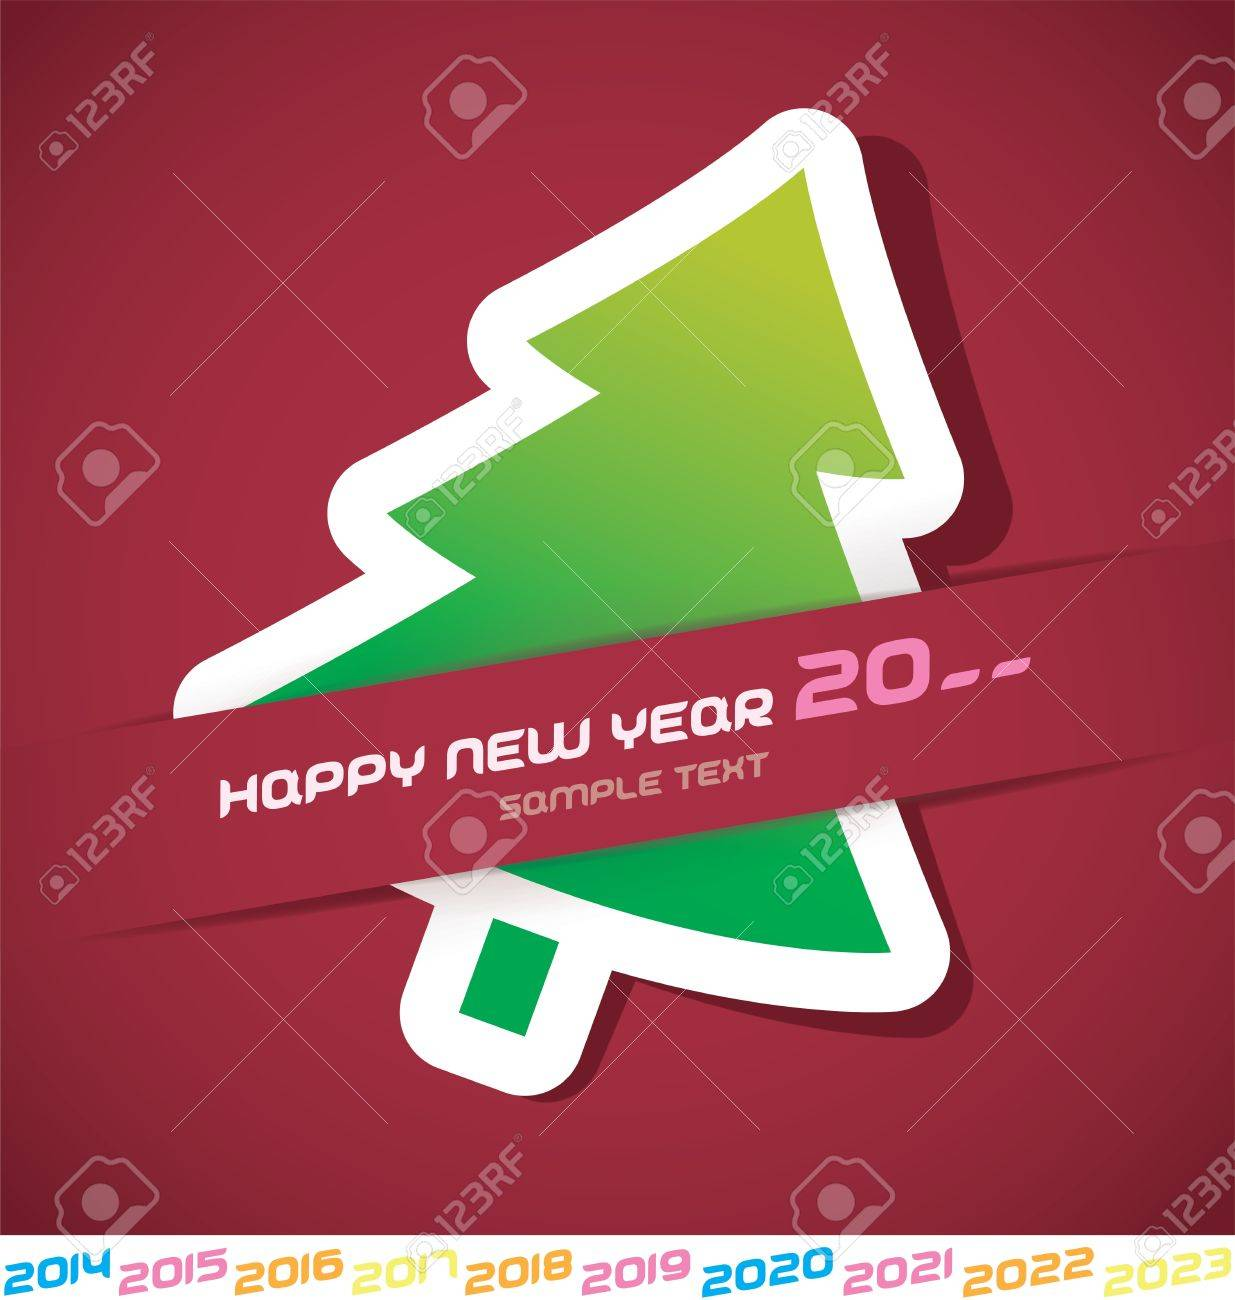 Modern Merry Christmas, New year 2014, 2015, 2016, 2017, 2018, 2019, 2020, 2021, 2022, 2023 Card, Badge, Icon, Symbol Stock Vector - 20423455